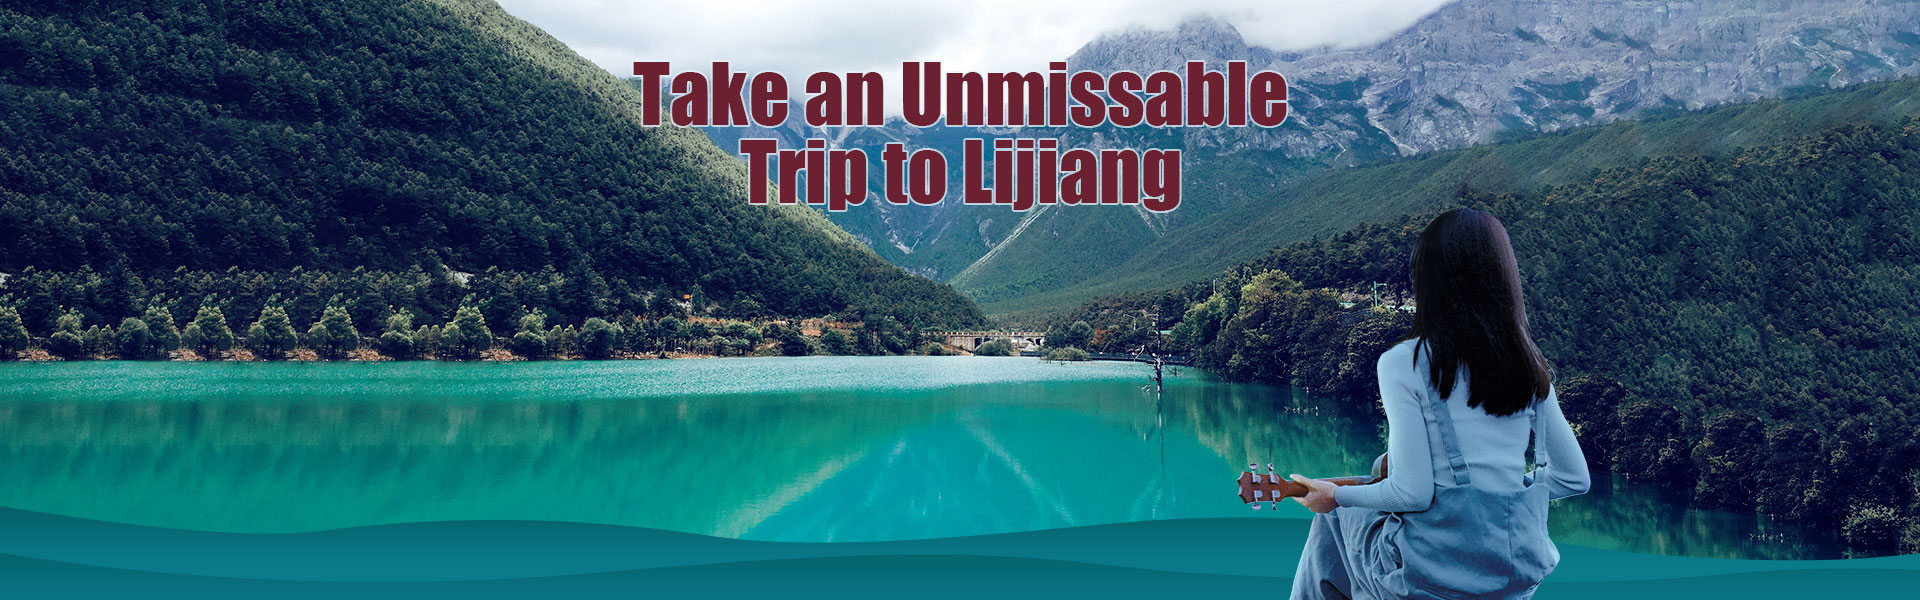 Take an Unmissable Trip to Lijiang